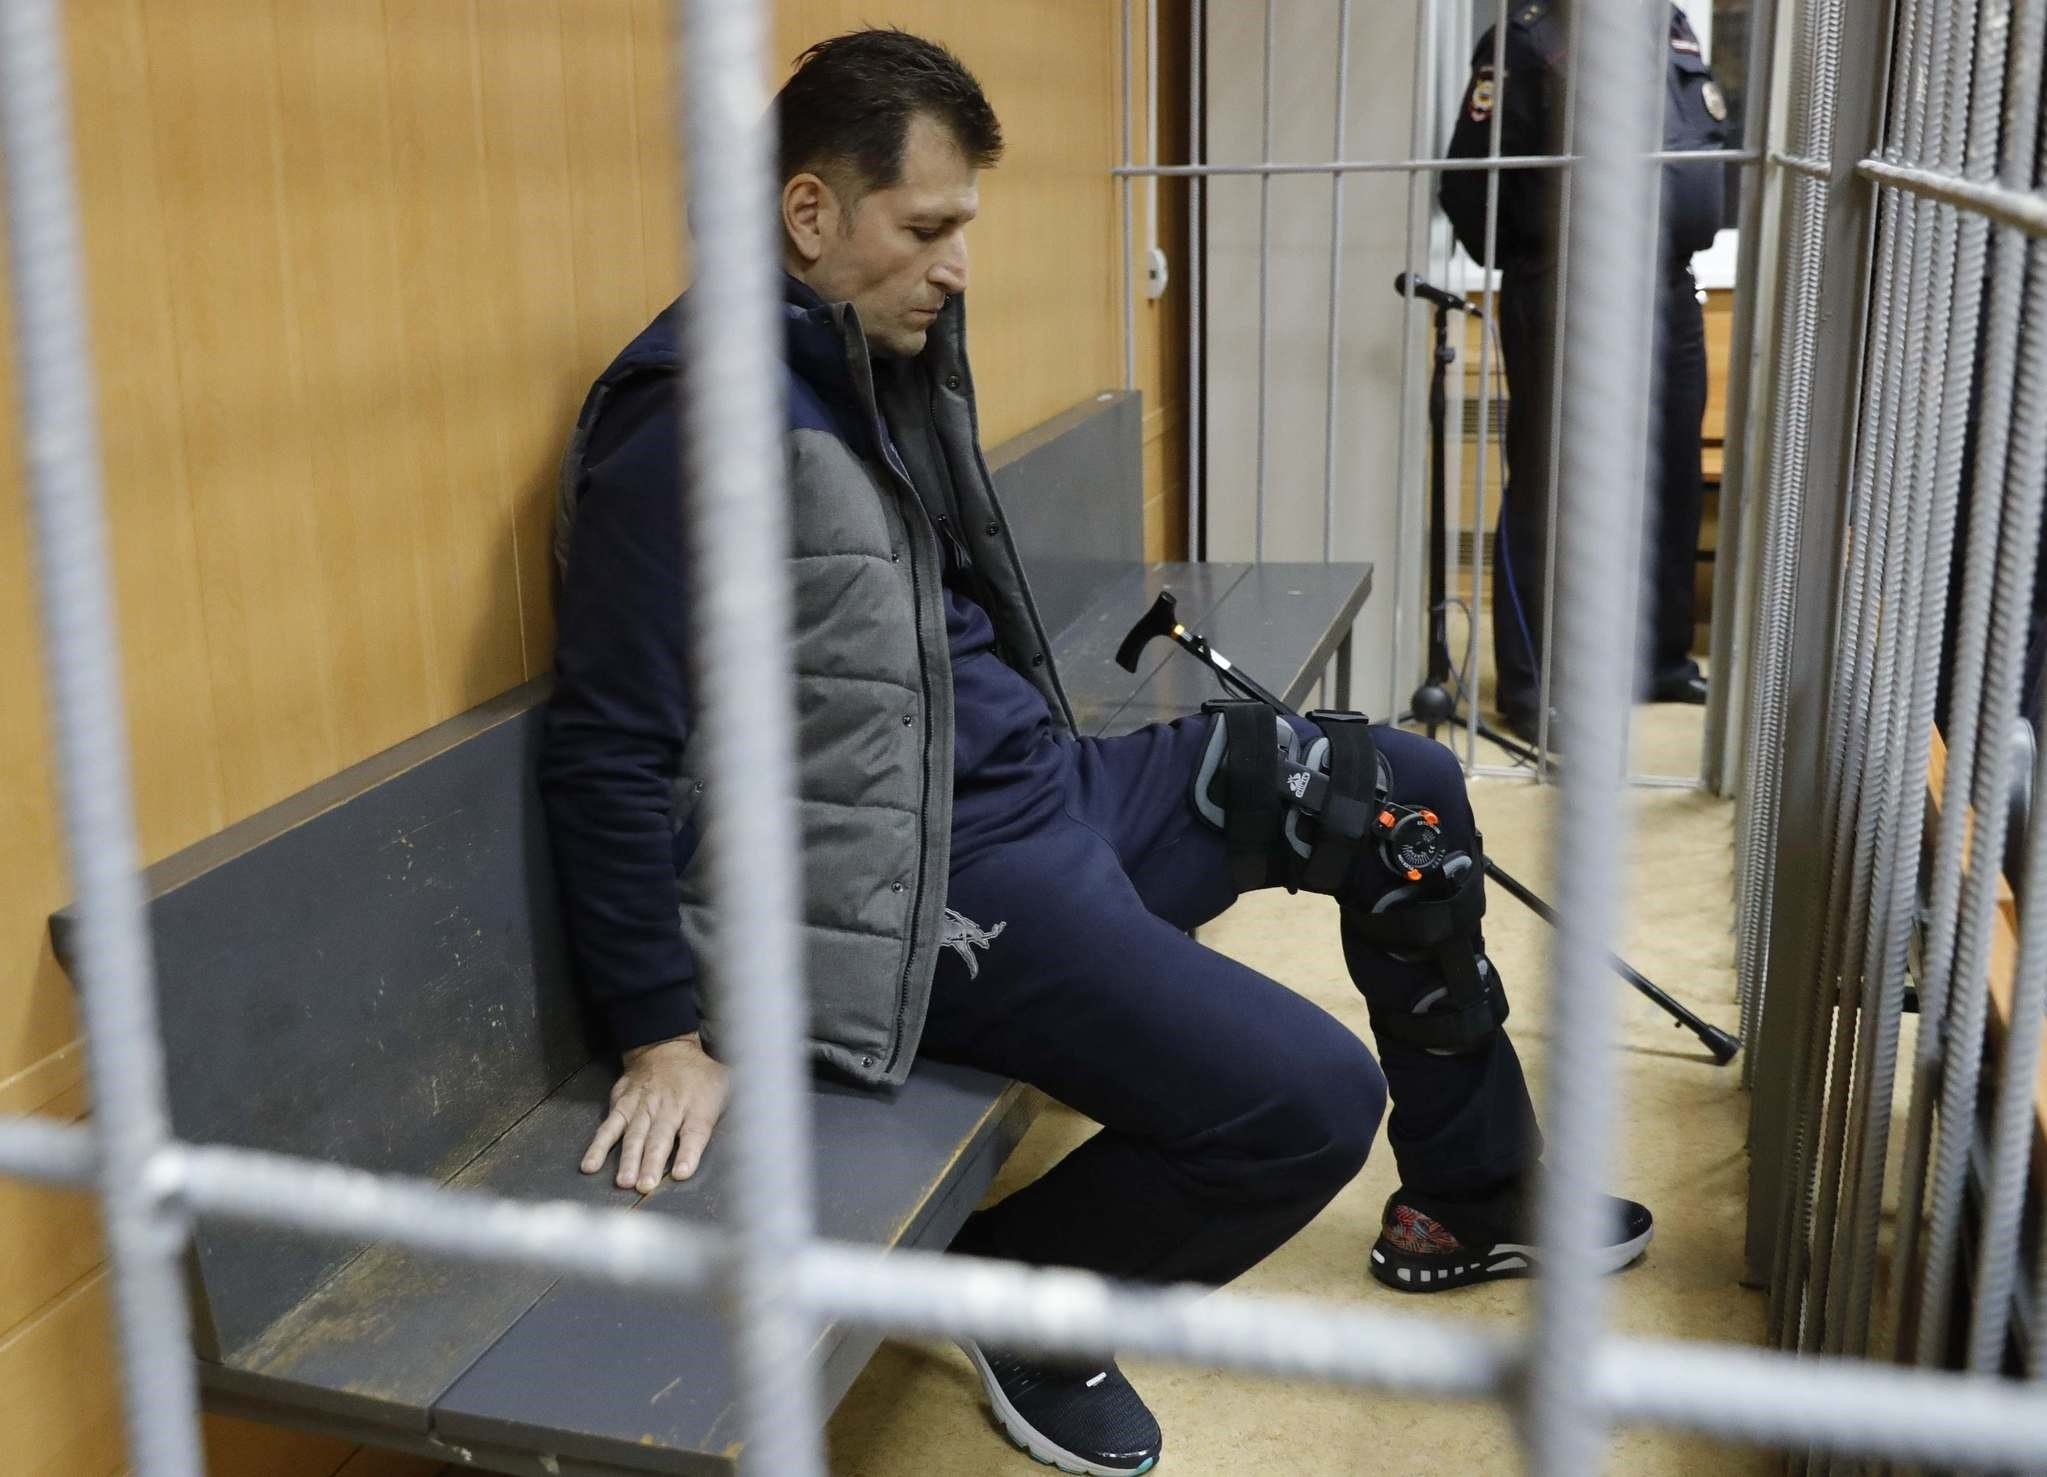 Magomed Magomedov, a business partner and brother of co-owner of Russia's Summa group Ziyavudin Magomedov, attends a hearing on his detention at the Tverskoy District Court in Moscow, Russia (Reuters Photo)